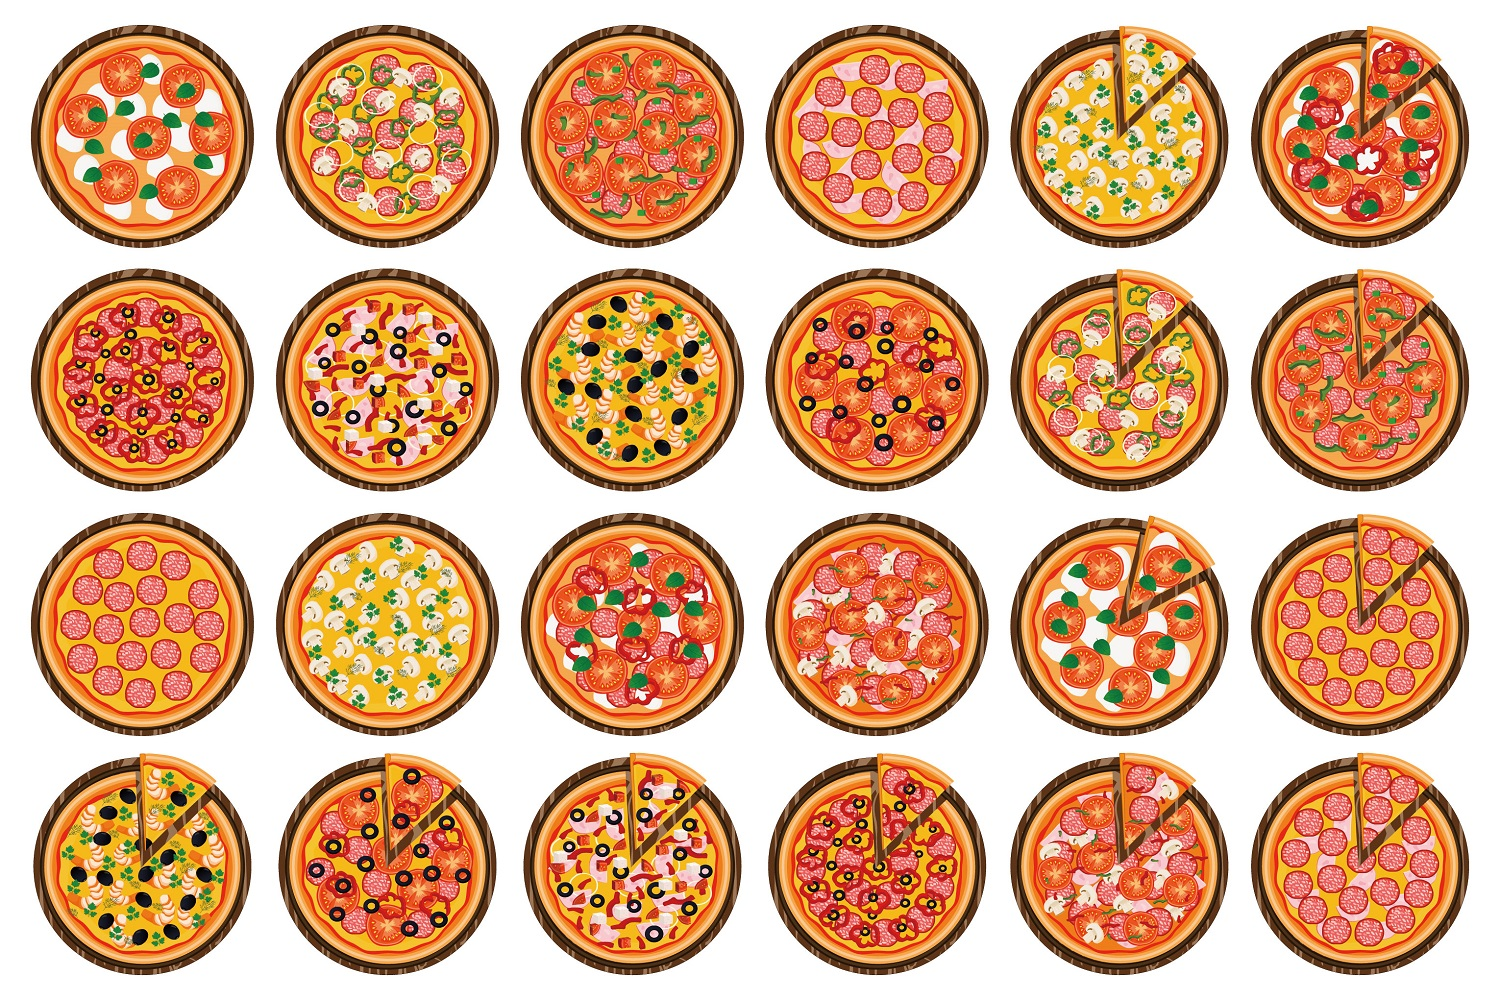 types of pizza in usa